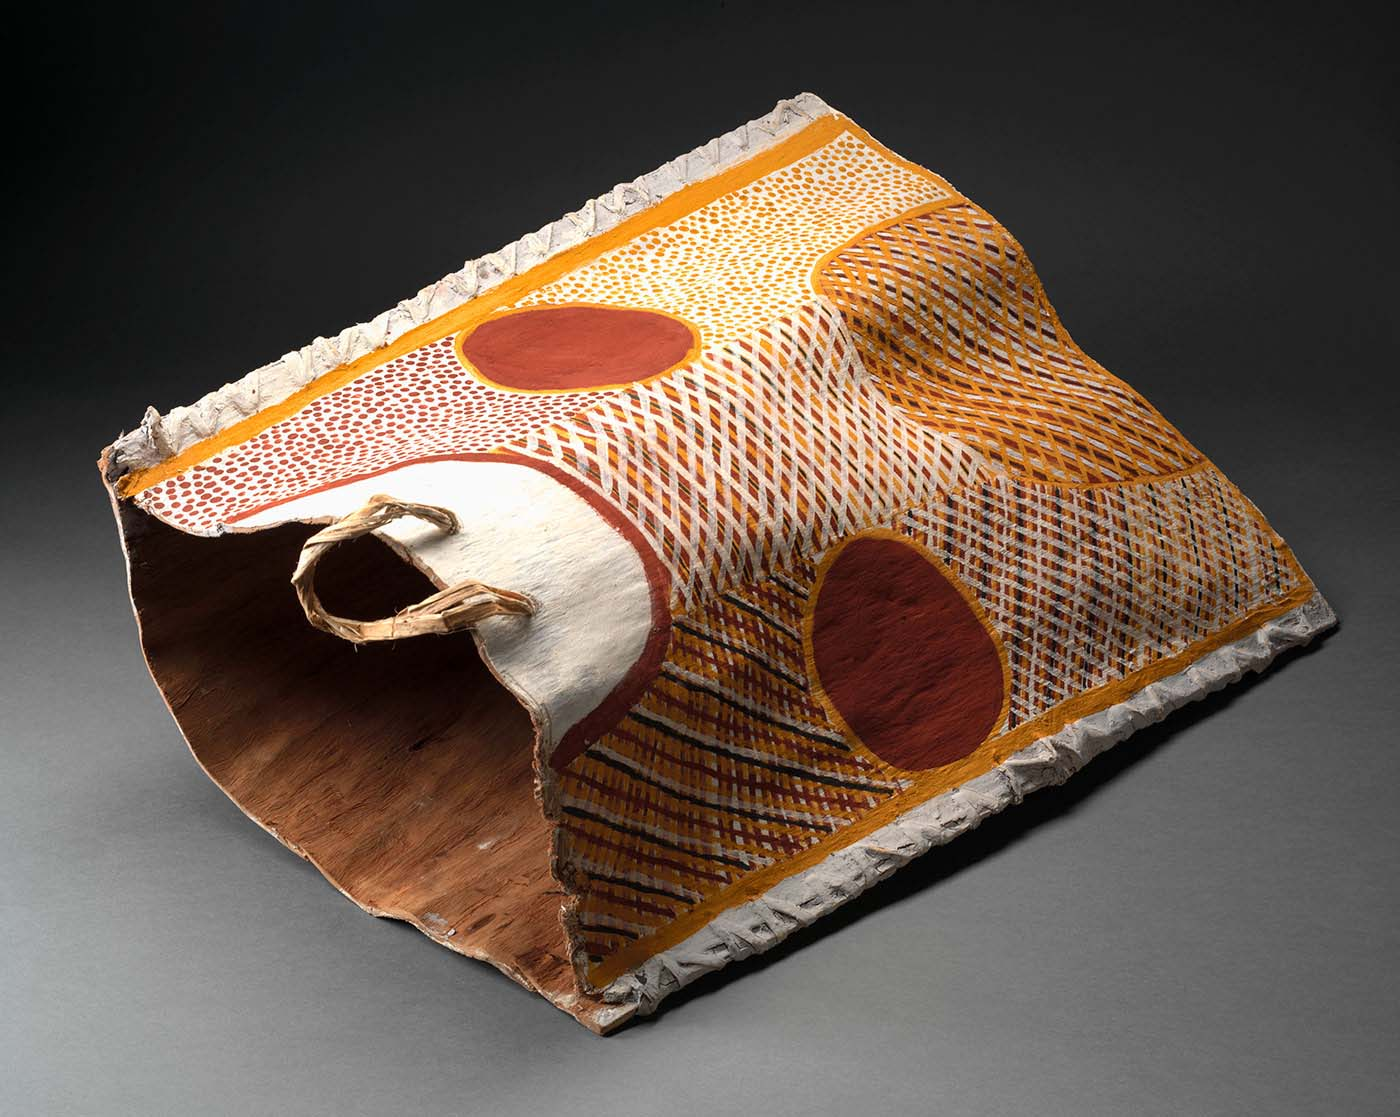 Basket made of eucalypt bark and natural fibre painted with natural ochres.